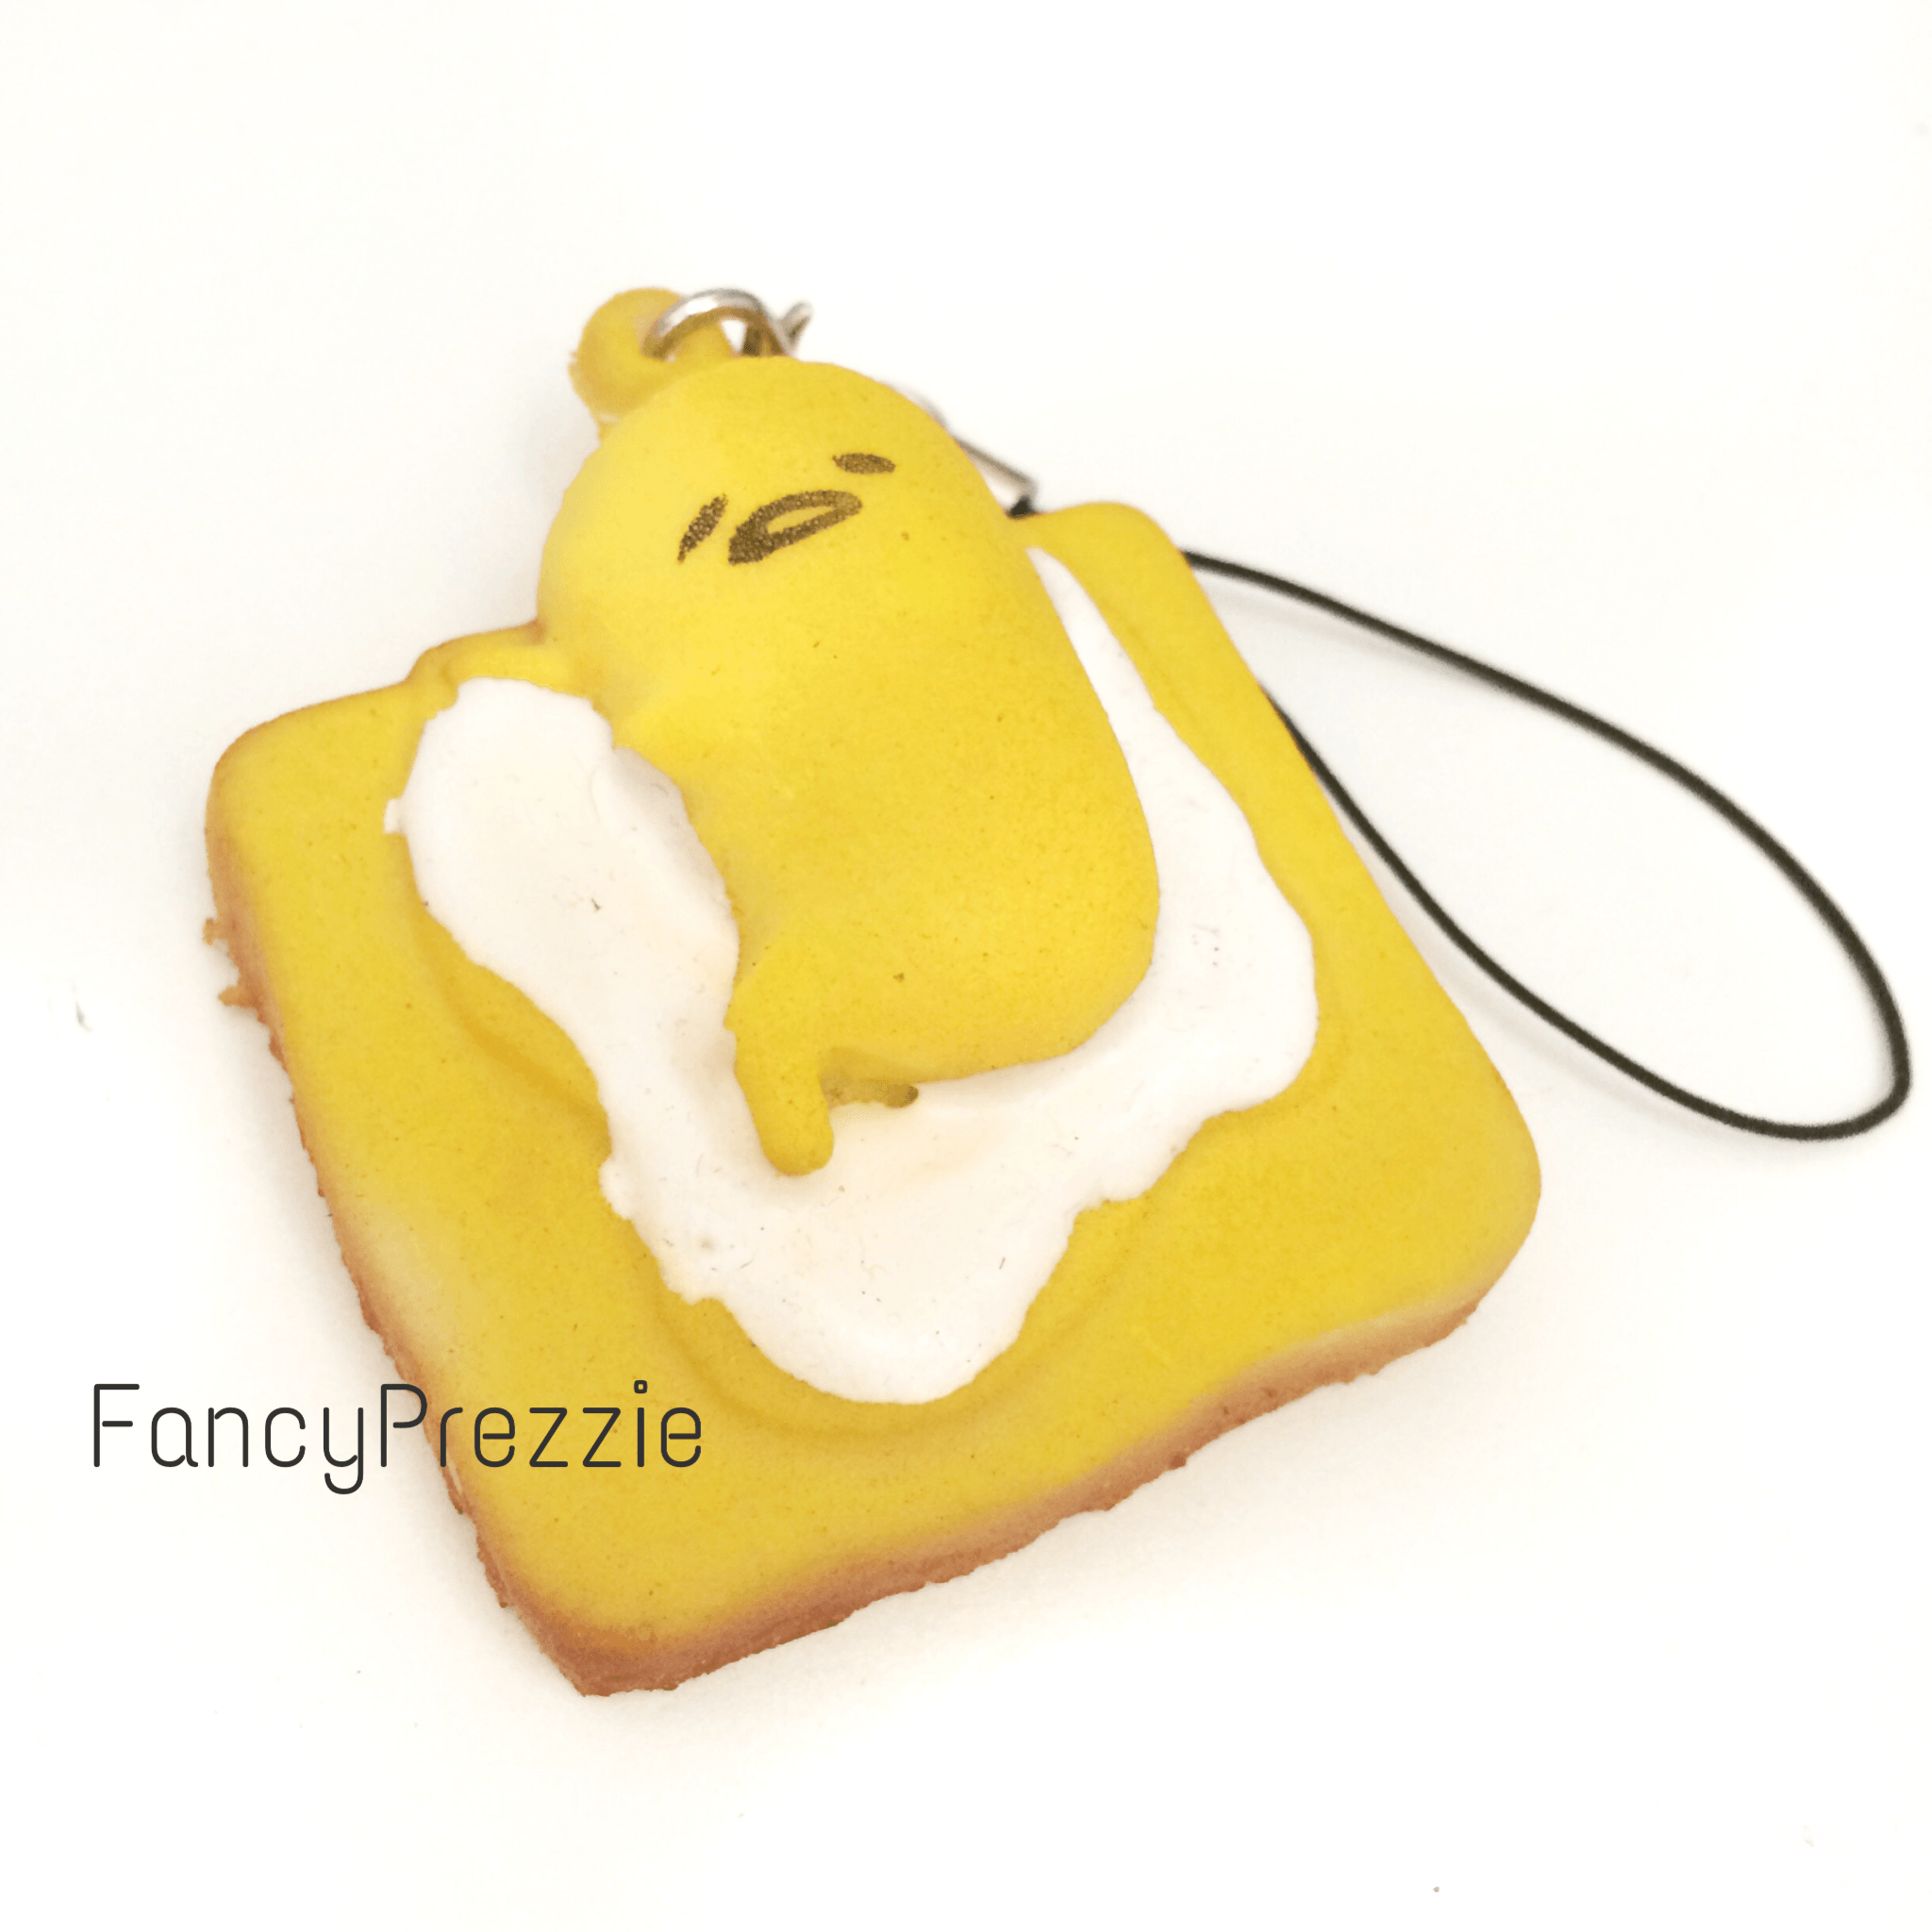 ... Egg Toast Squishy · FancyPrezzie · Online Store Powered by Storenvy: fancyprezzie.storenvy.com/products/15581151-gudetama-egg-toast-squishy